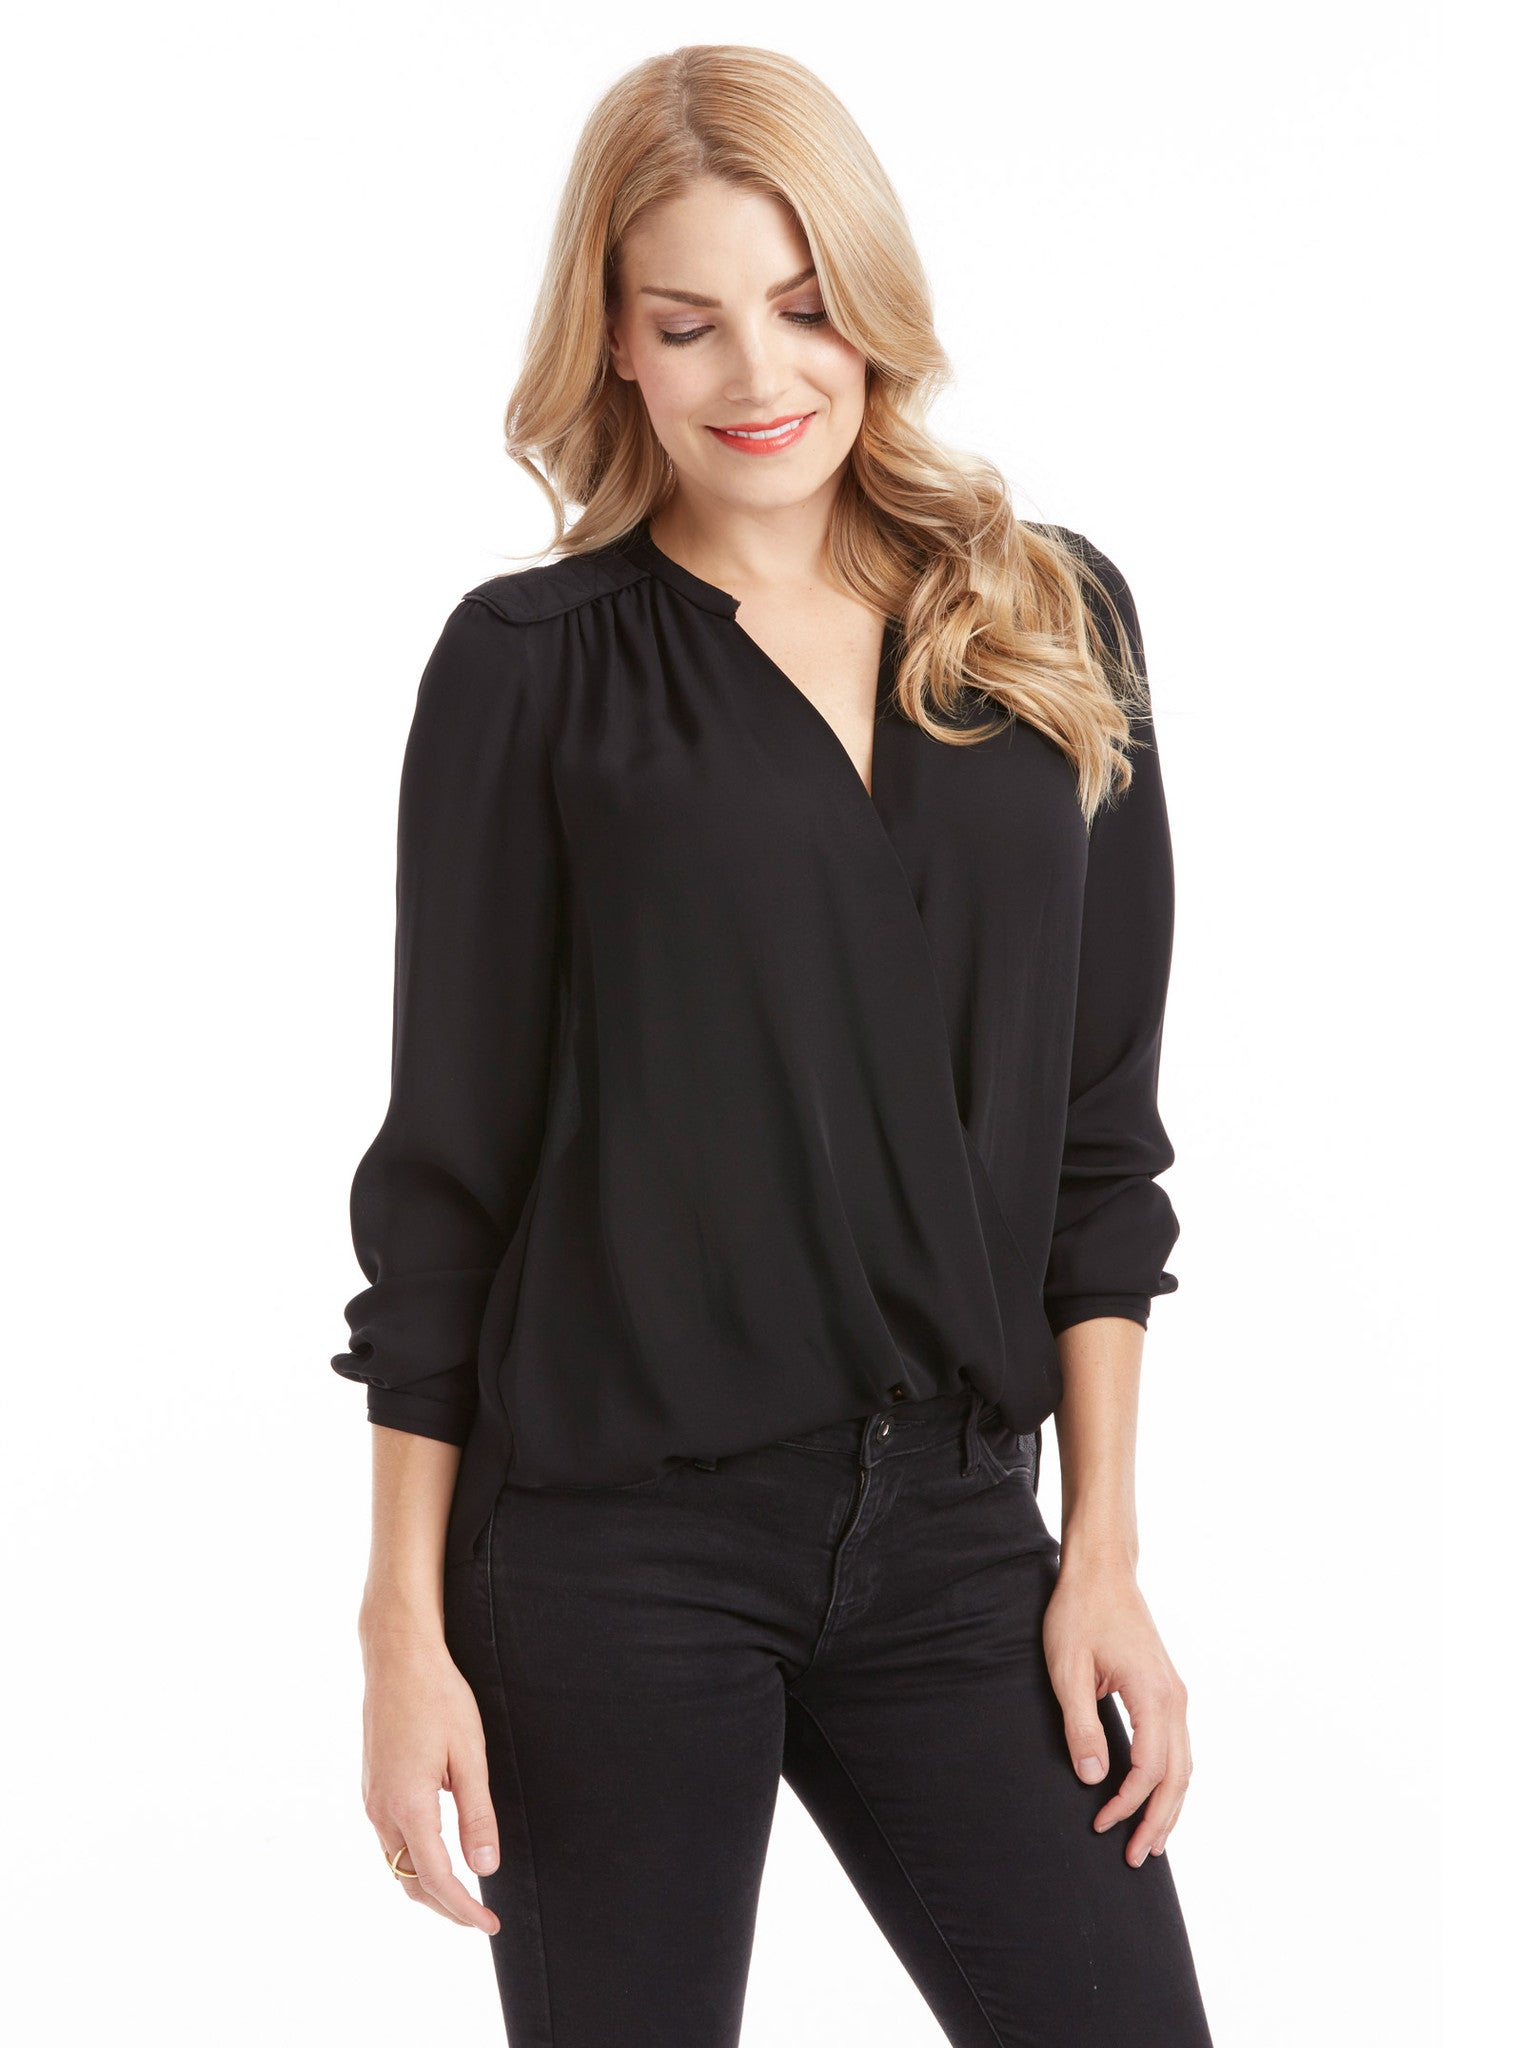 Rebecca Taylor Danielle Top - Black | TILDEN